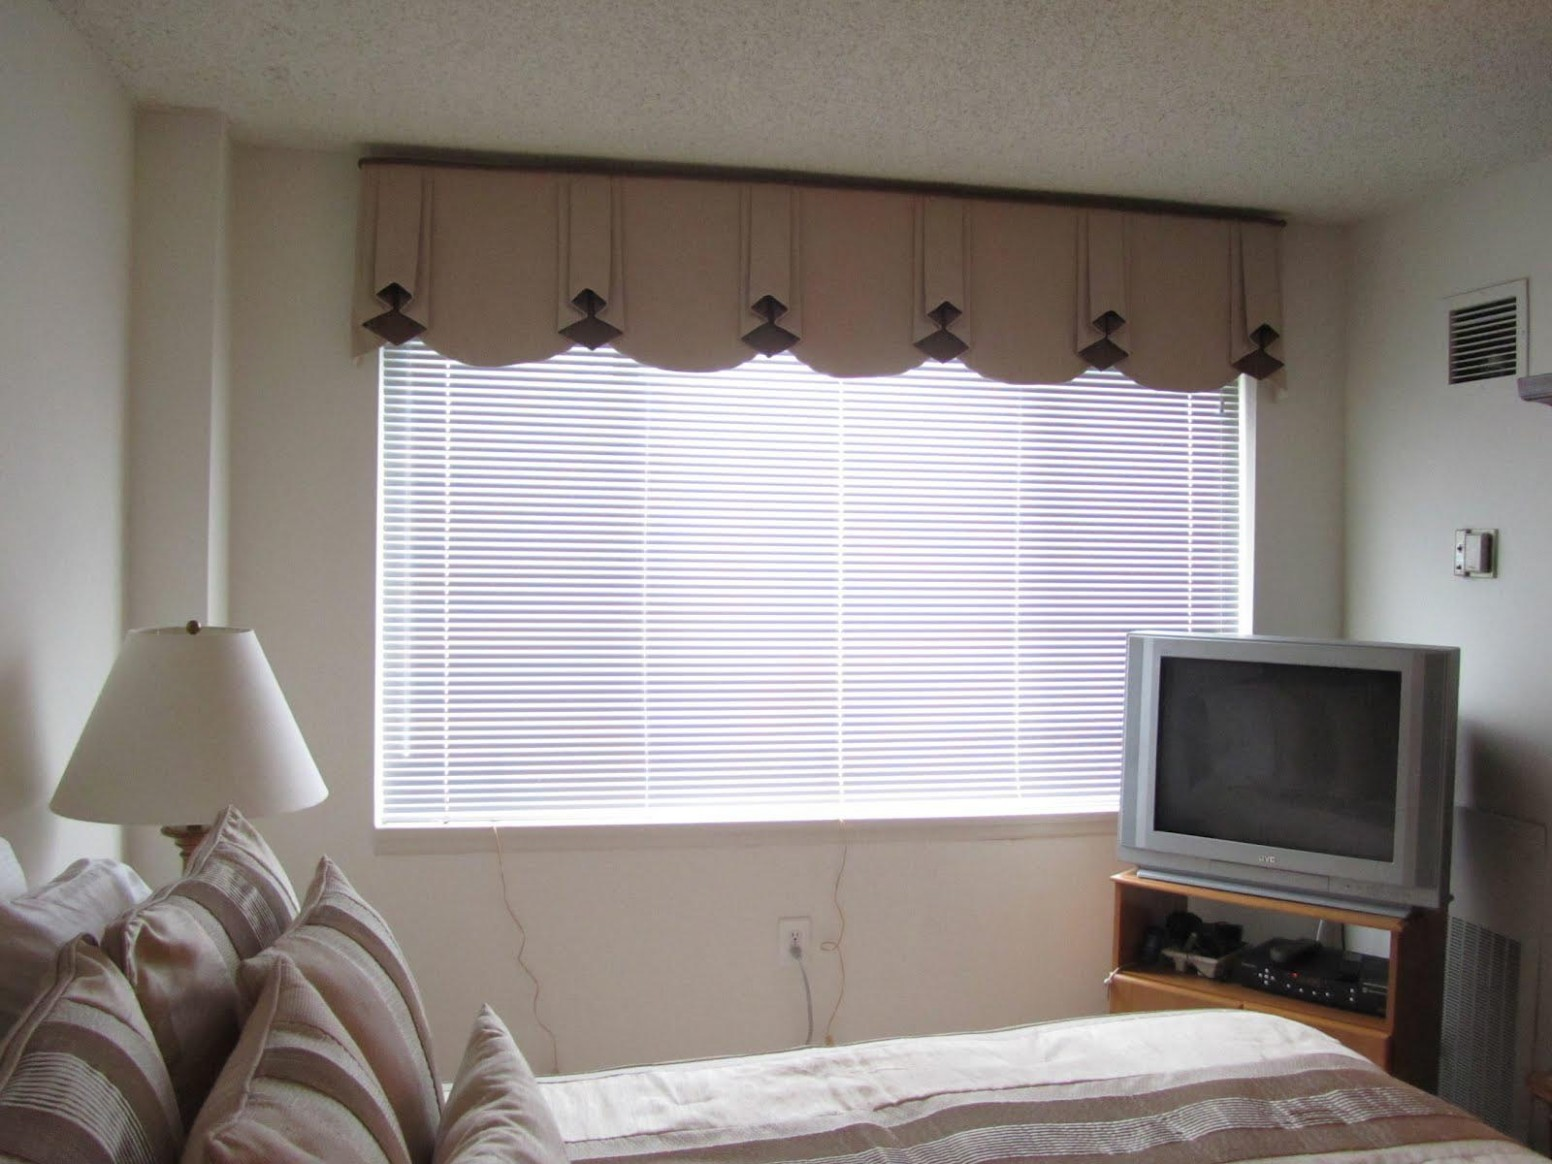 Cascade Valance Bay Window Bedroom Curtains With Cornice Rustic  - Window Valance Ideas For Bedroom